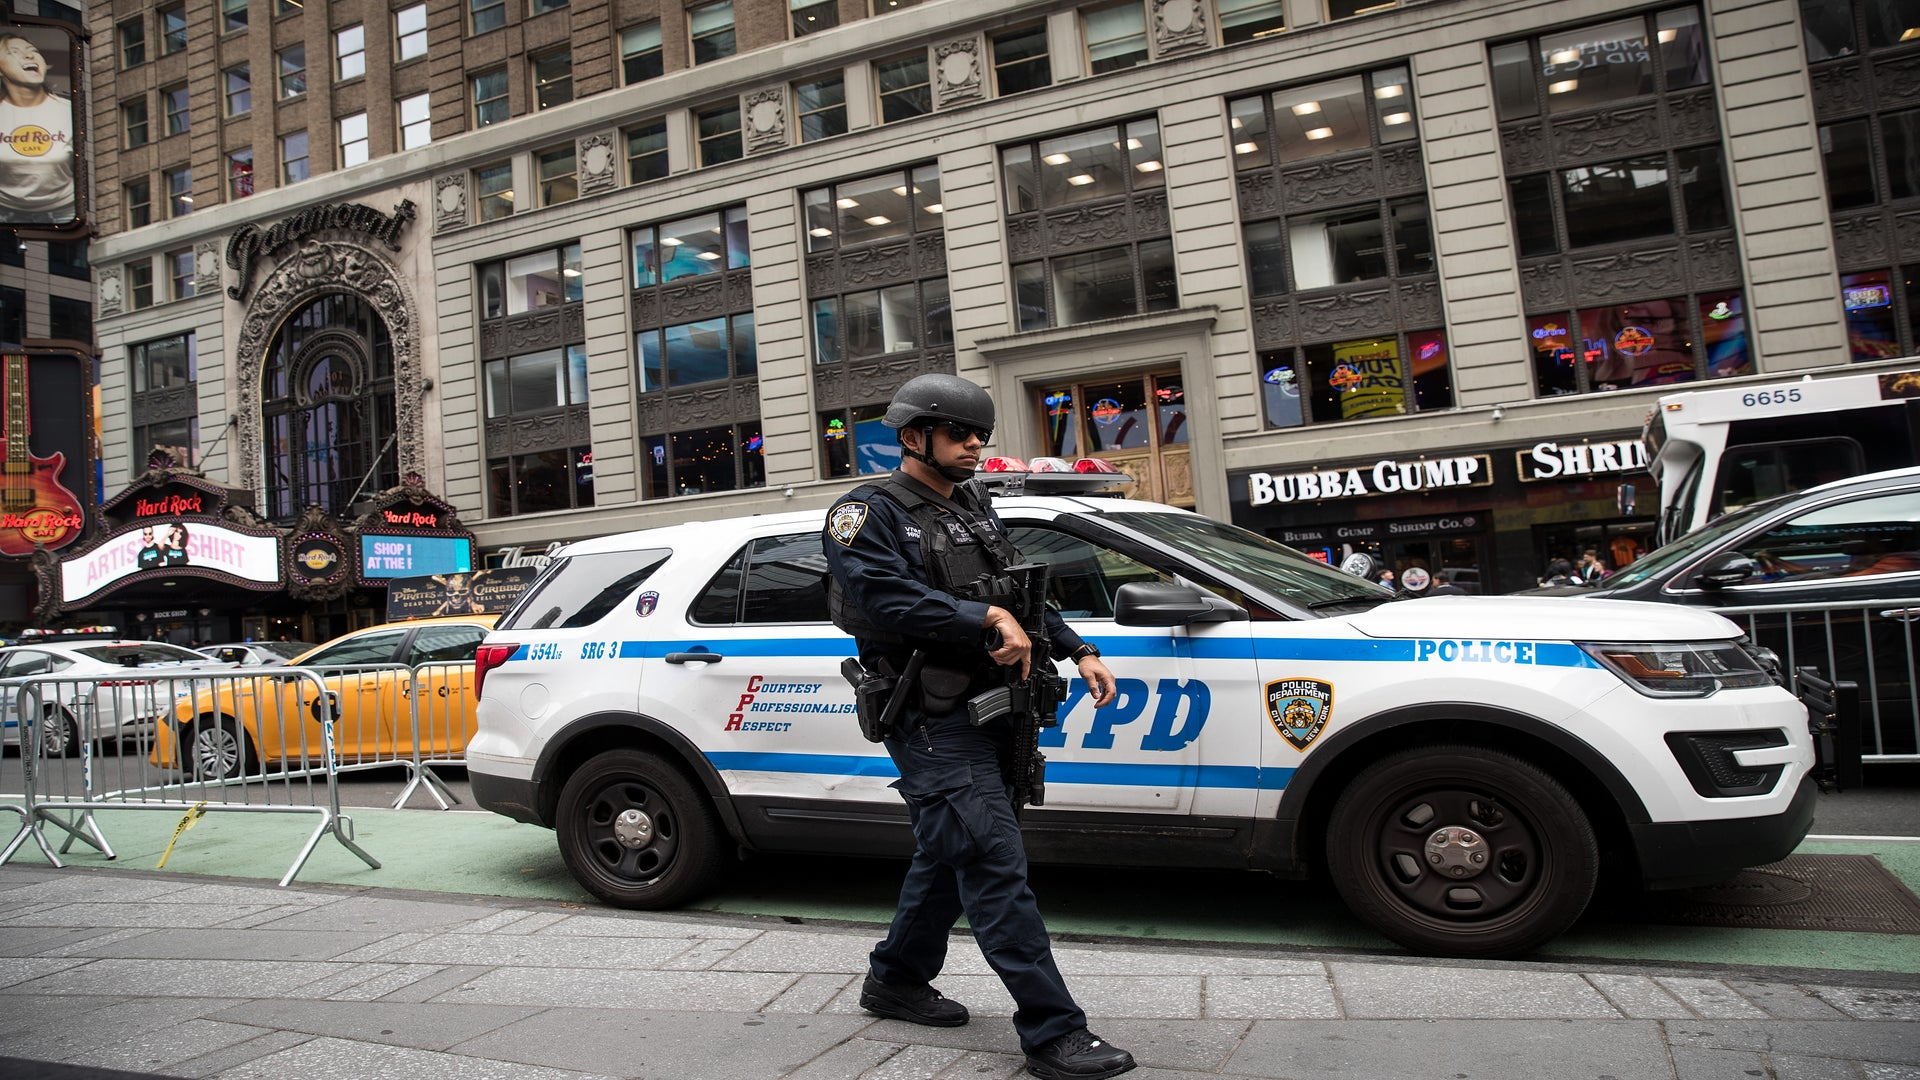 UPDATE: Explosion Confirmed At Major NewYork City Bus Terminal, Suspect Identified